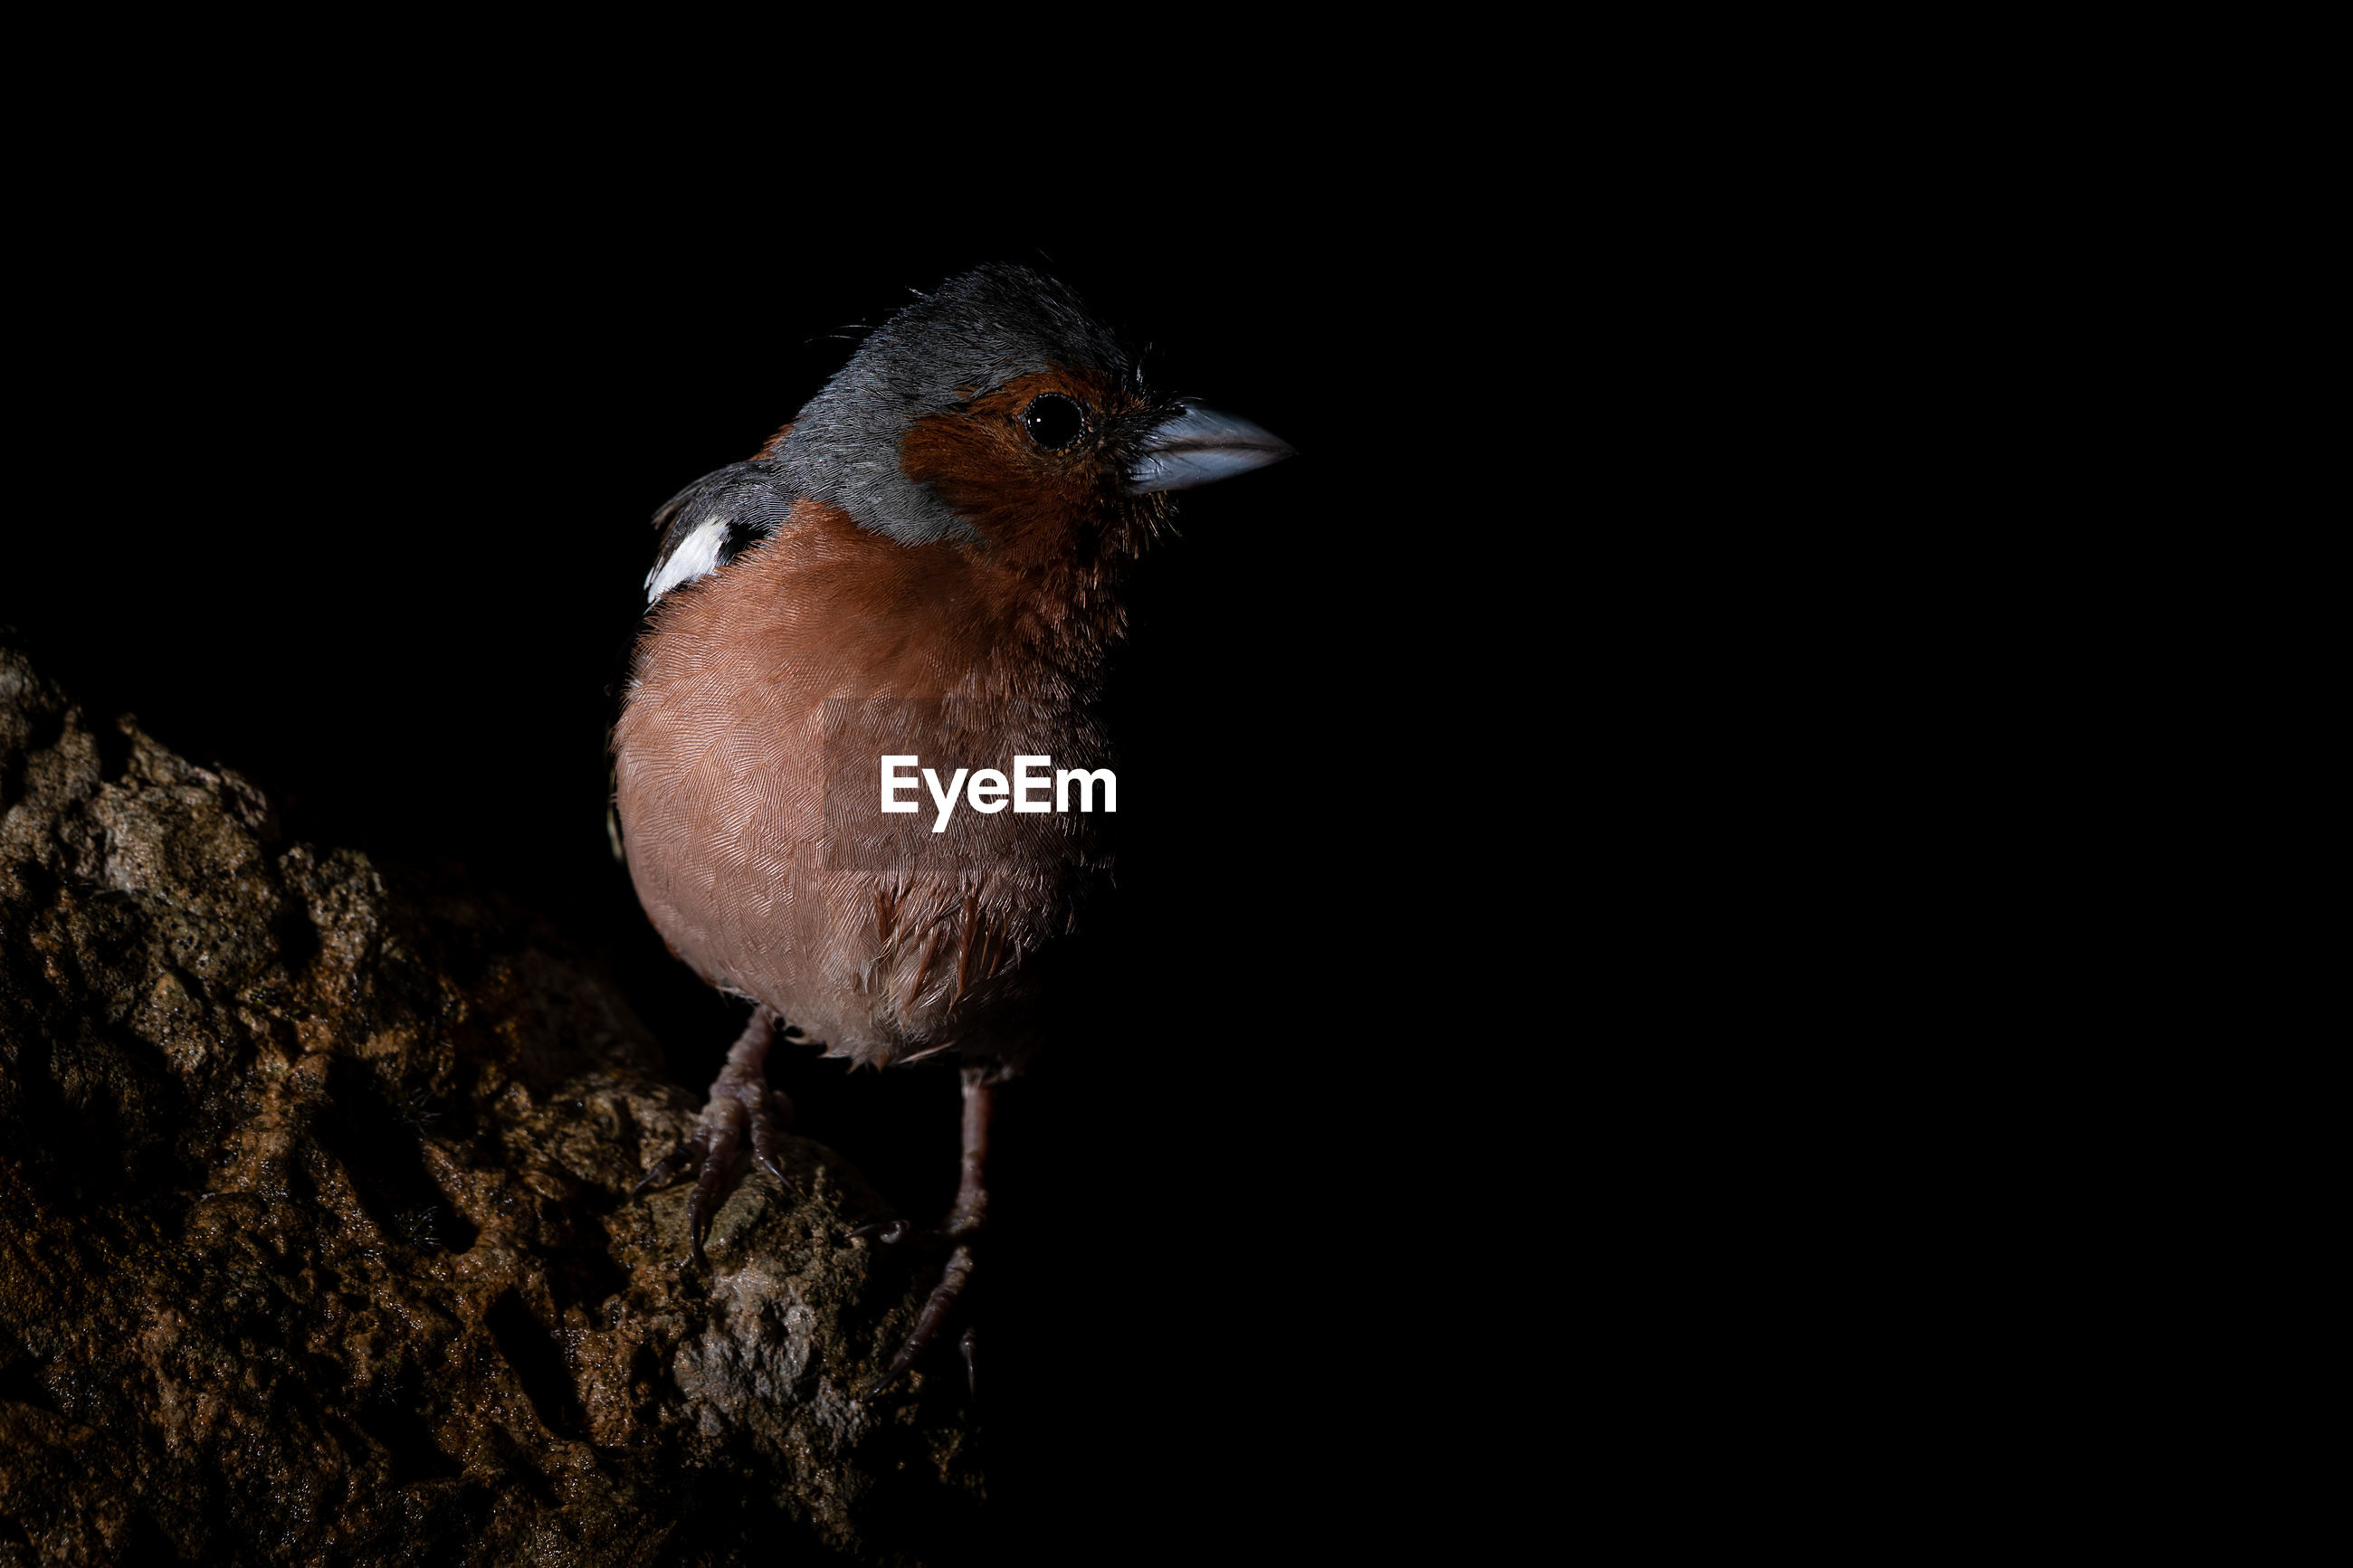 CLOSE-UP OF A BIRD PERCHING ON A BLACK BACKGROUND